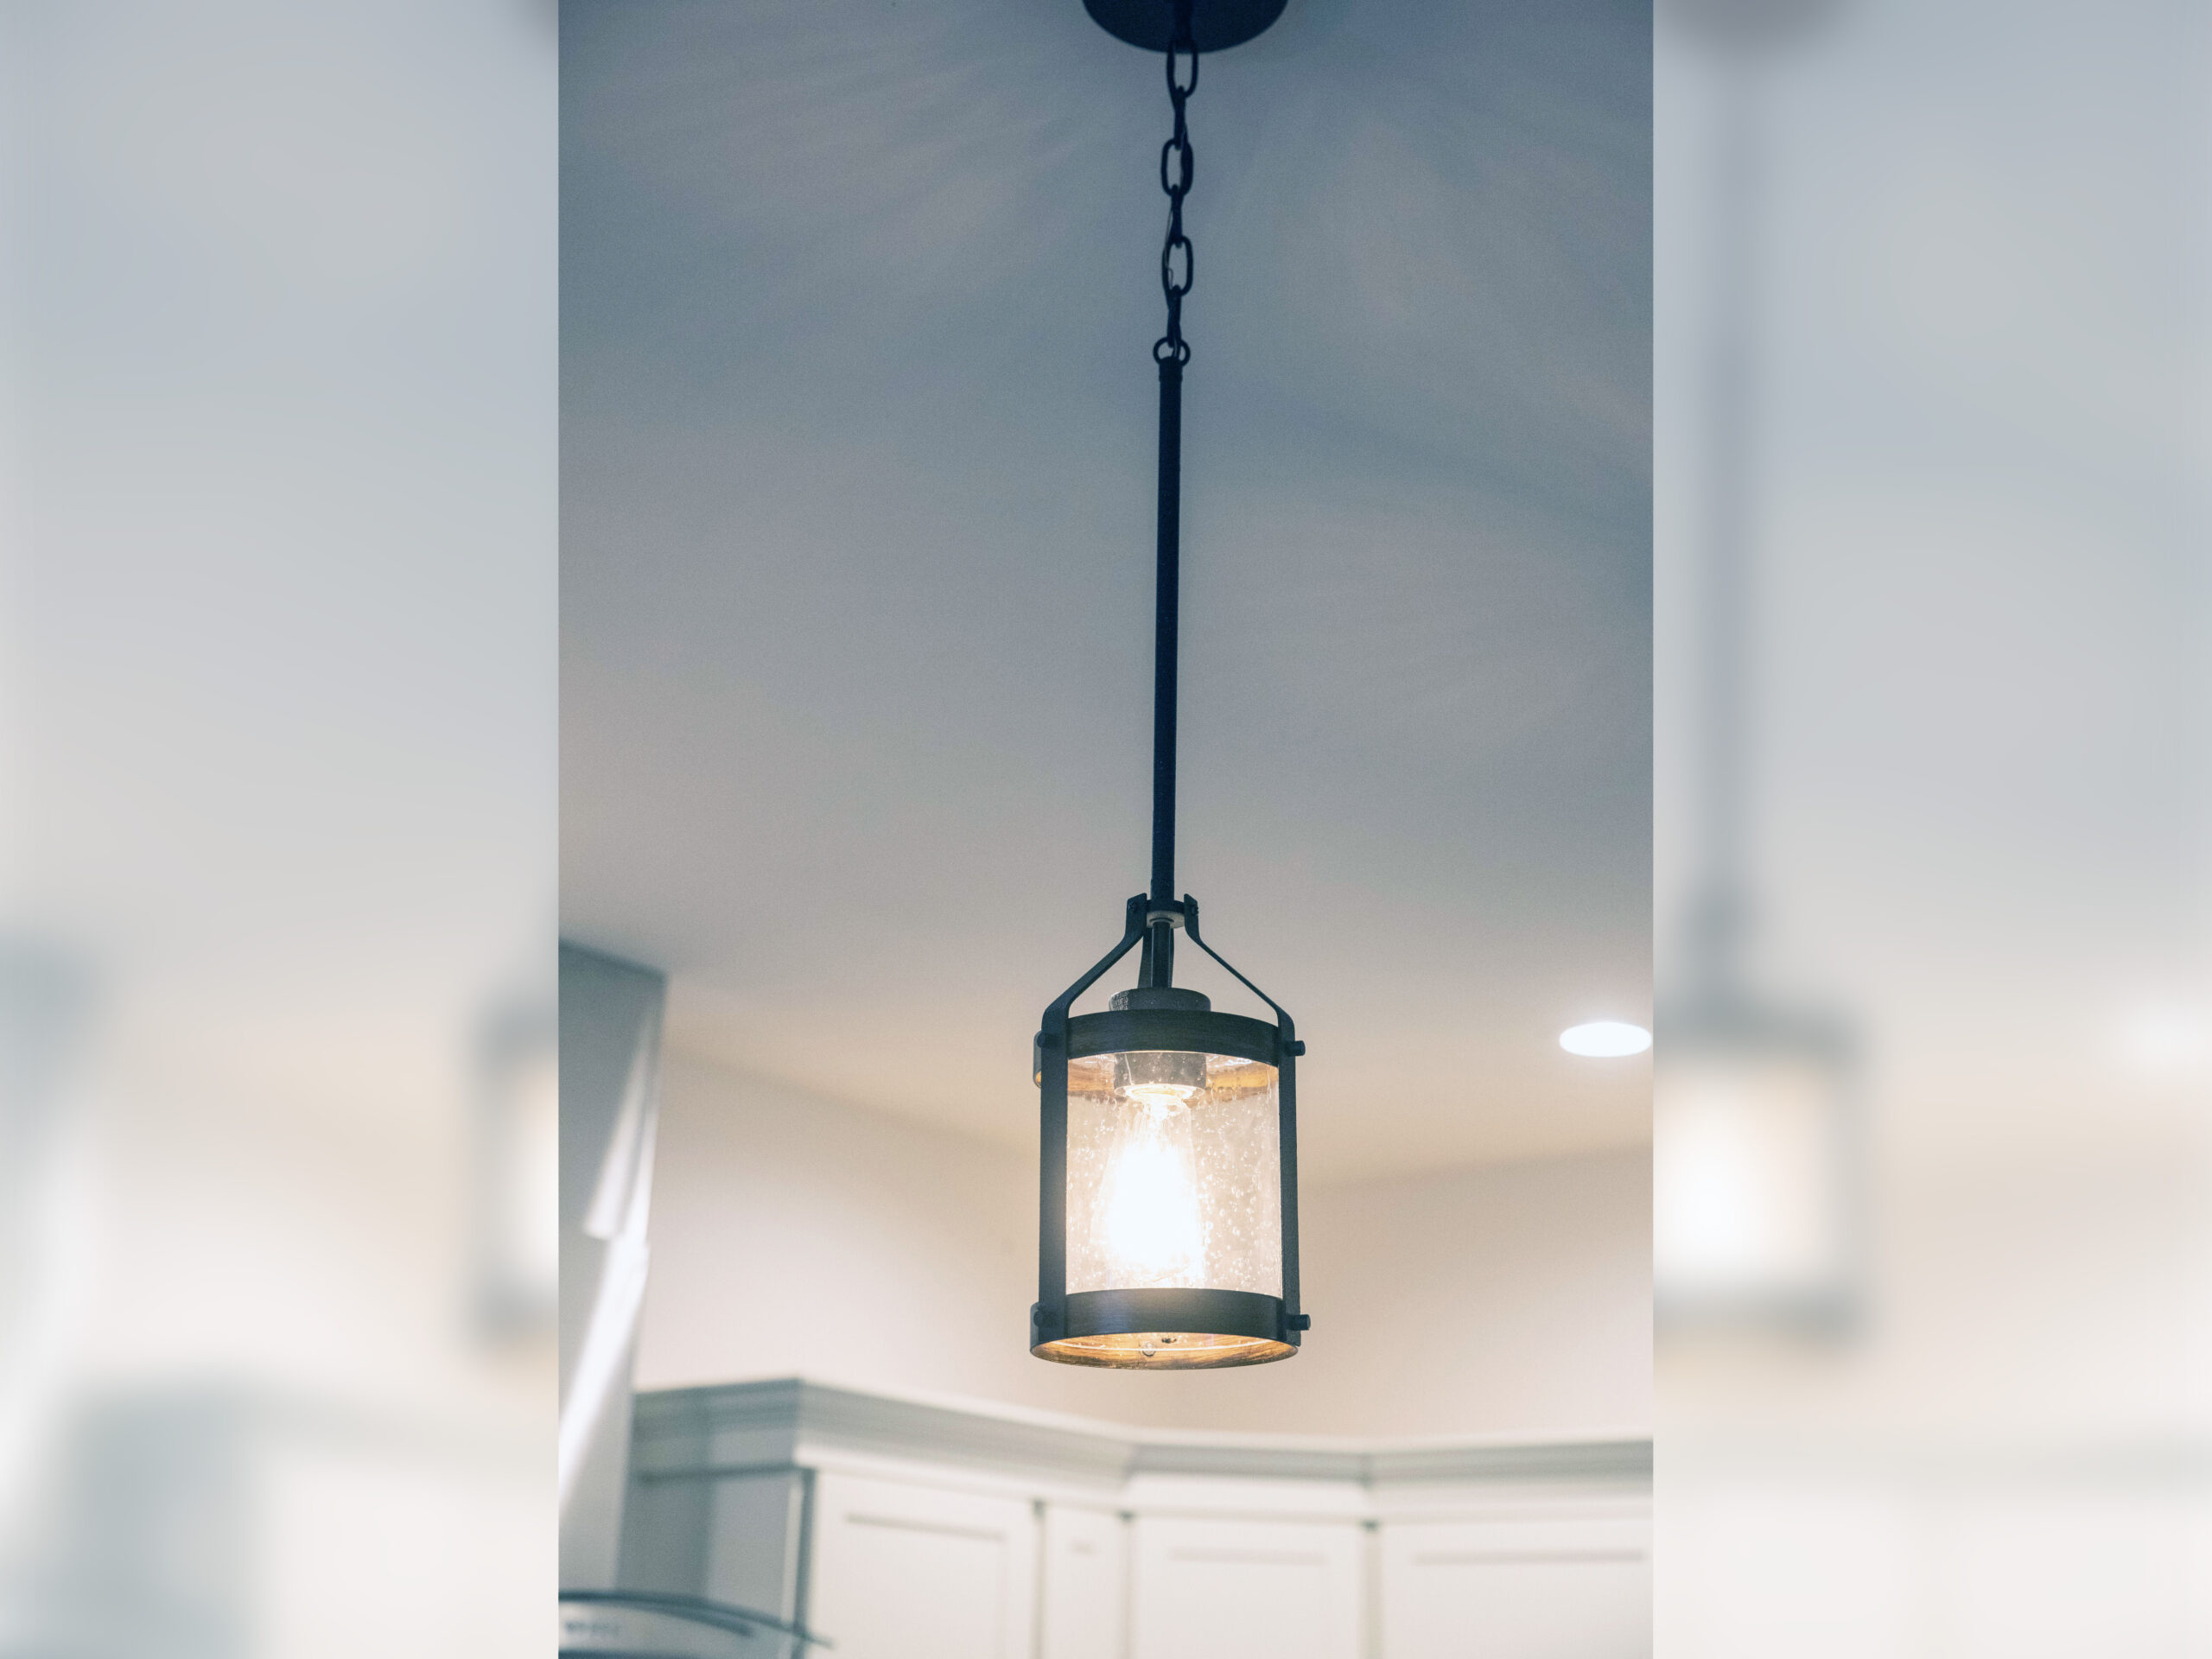 Wrought iron lighting fixture with a single lightbulb